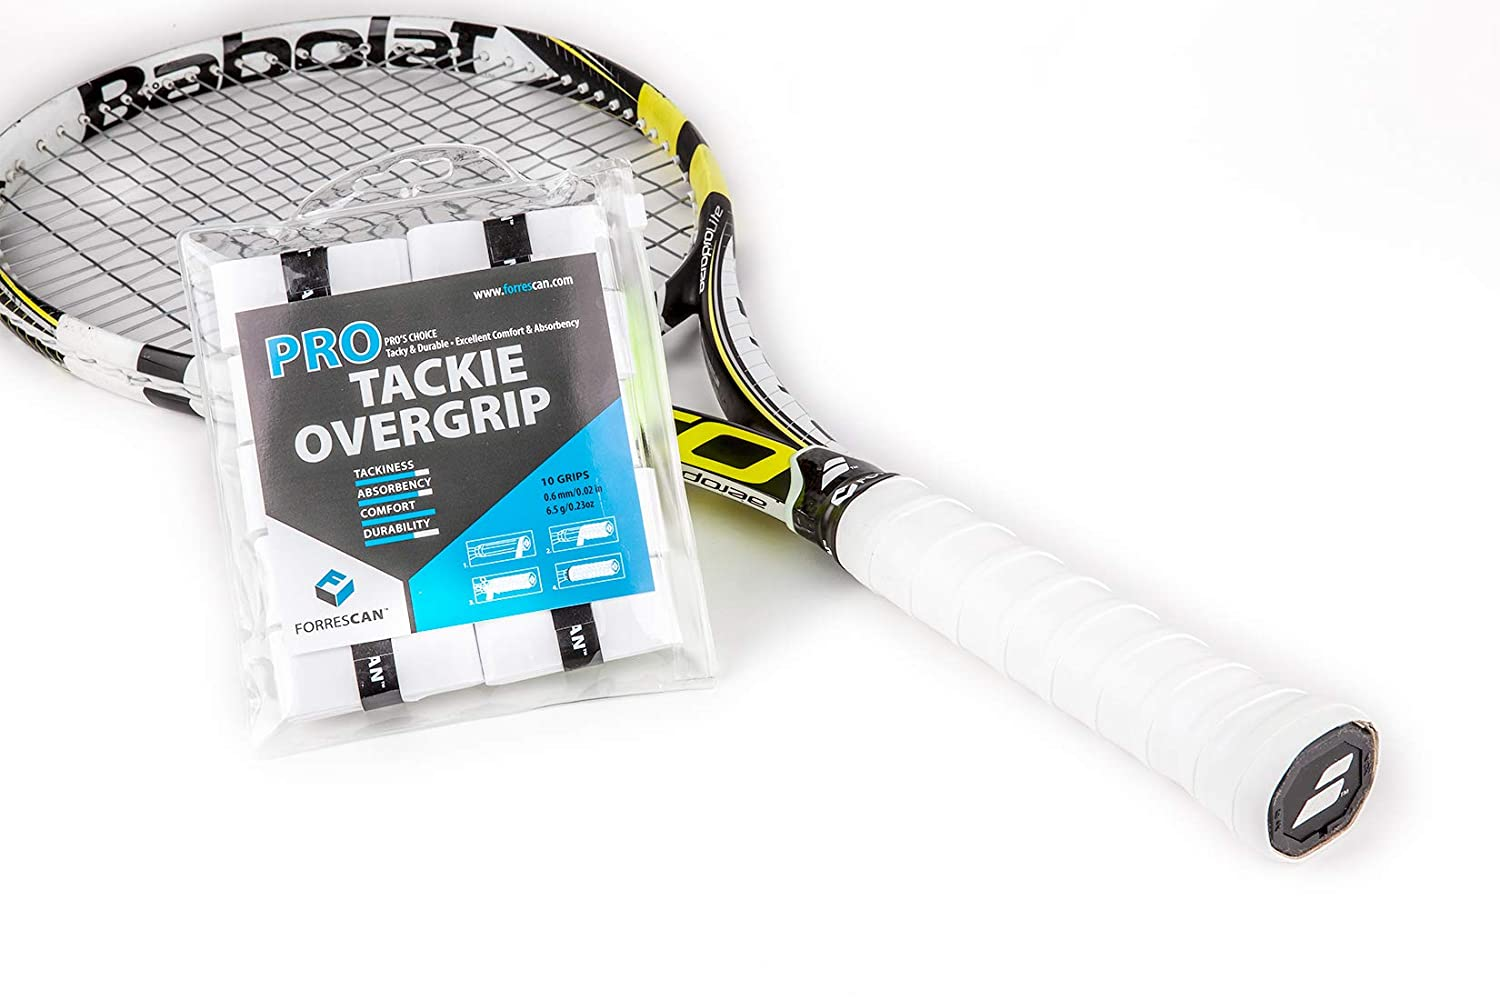 Amazon.com : ForresCAN Tennis Overgrip - Pro Tackie White - Tacky Anti-Slip Durable - Pack of 10 : Sports & Outdoors